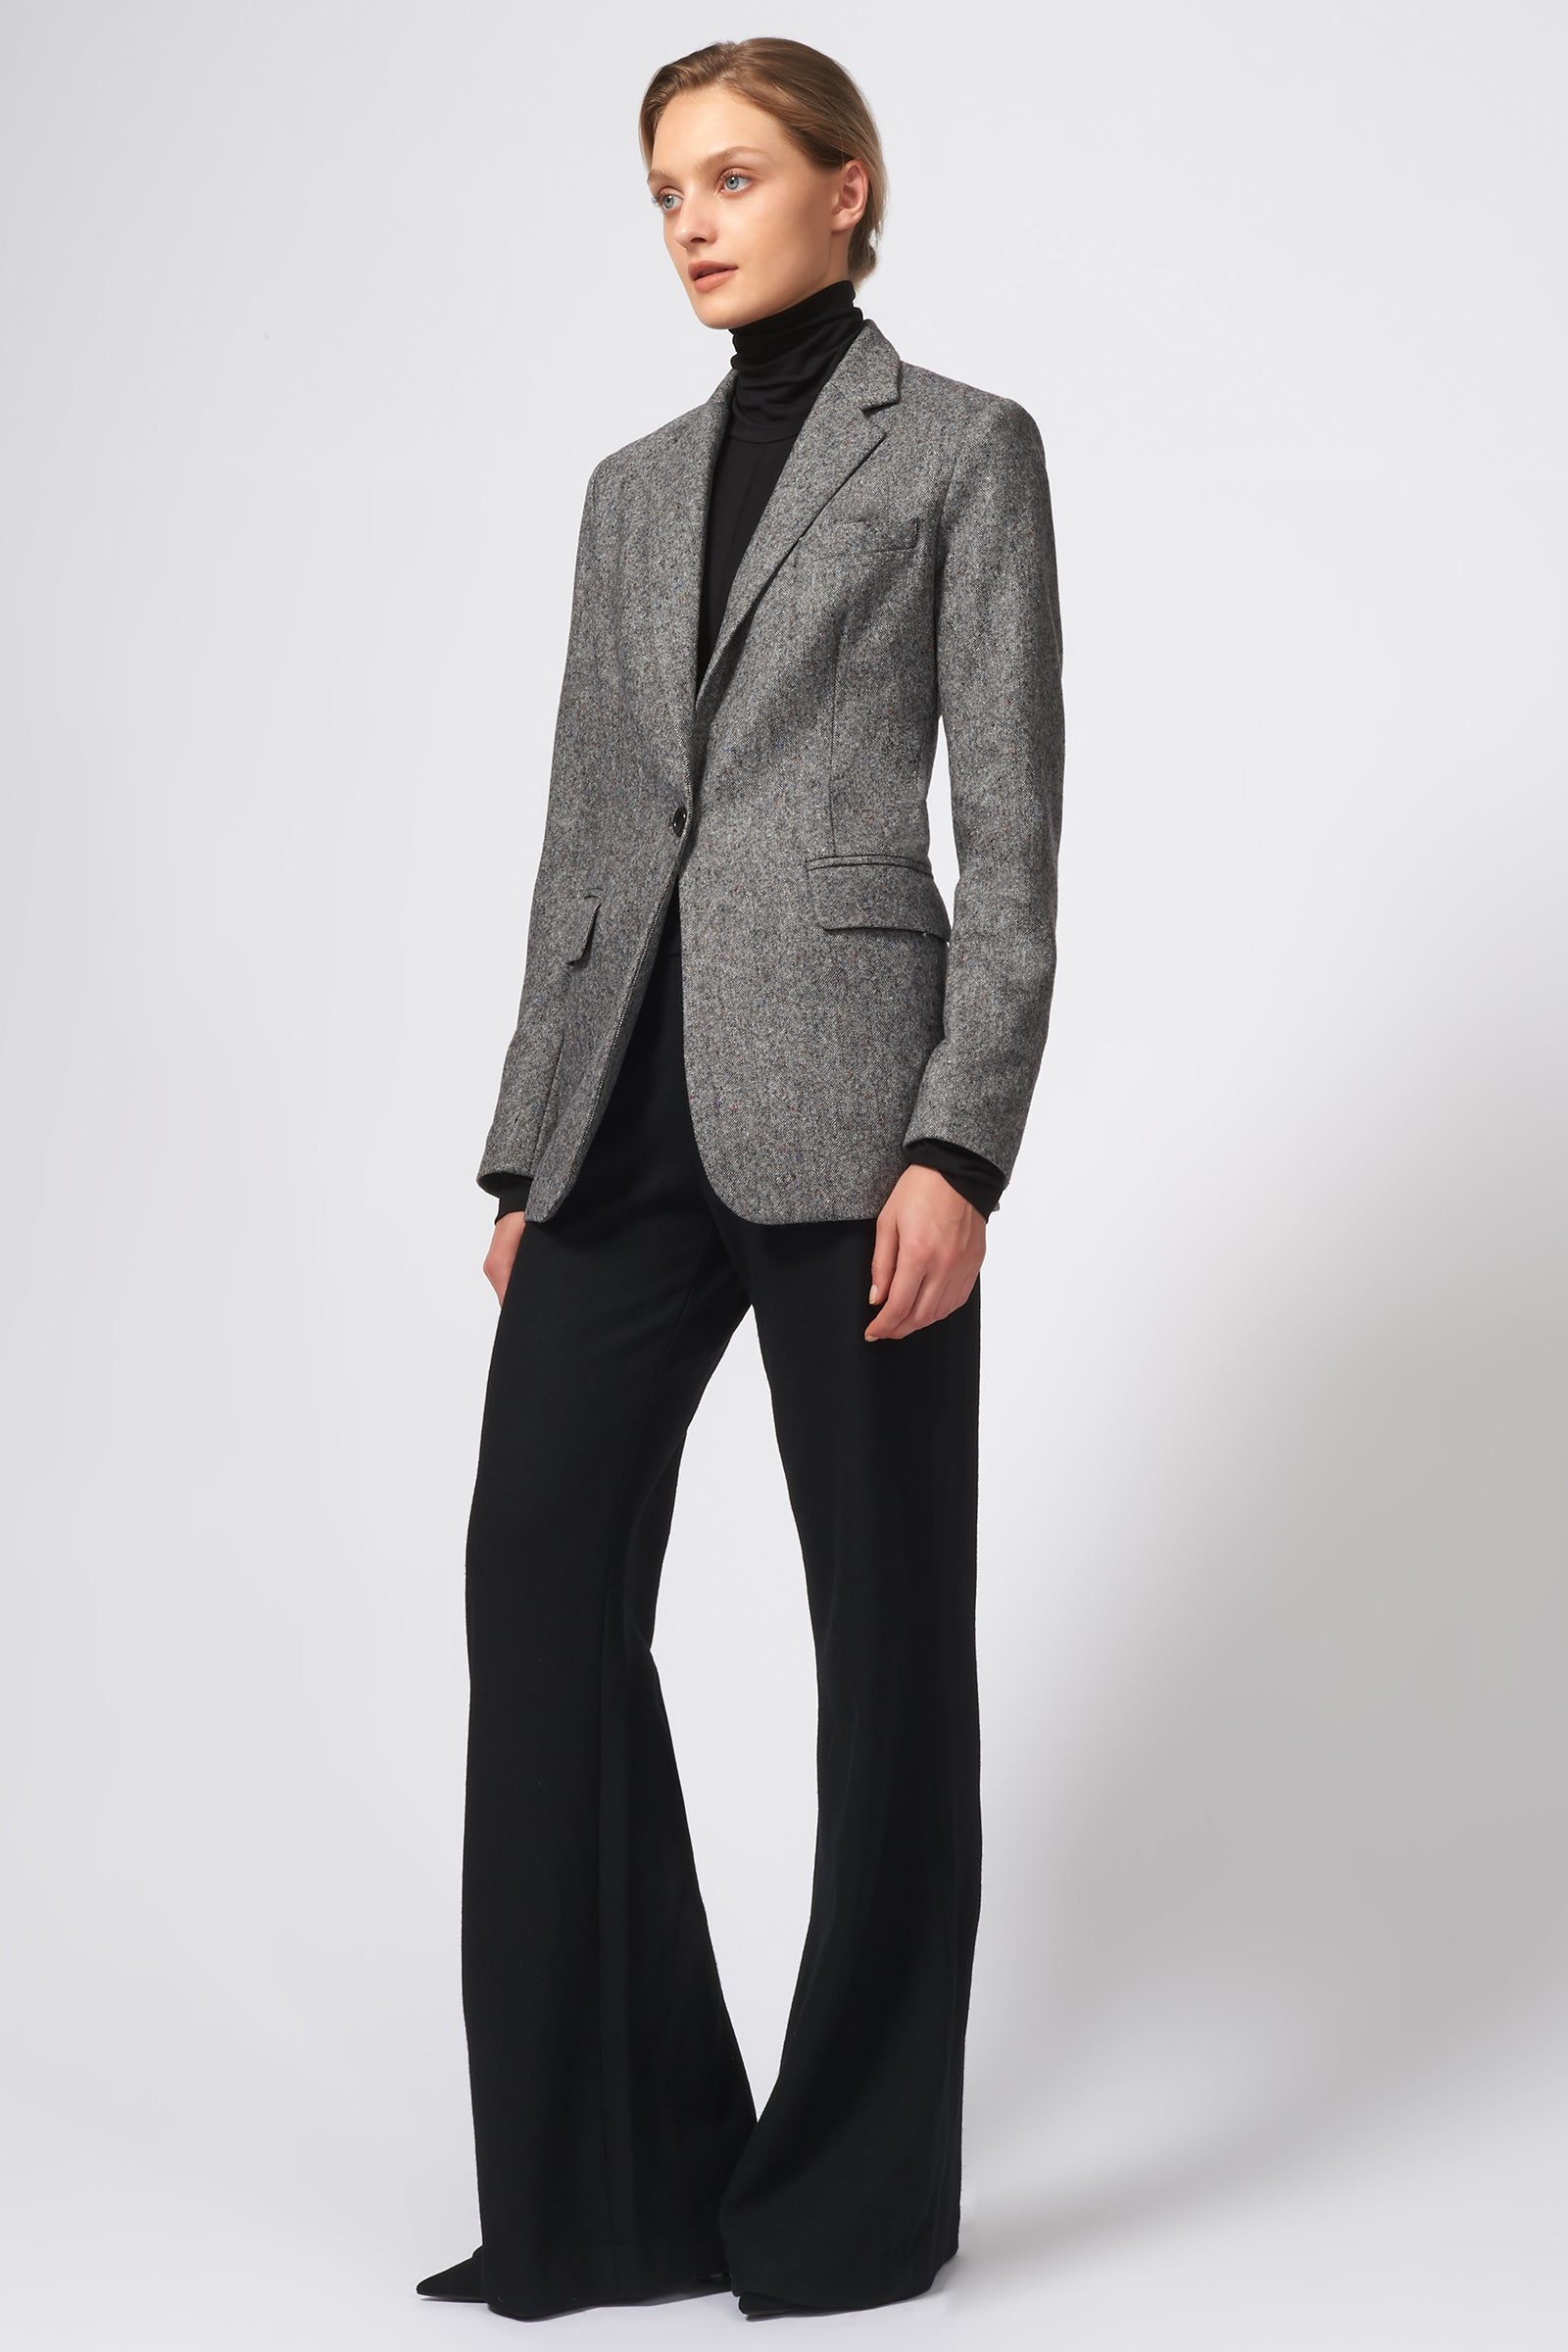 Kal Rieman Classic Notch Blazer in Grey Tweed on Model Front Full View